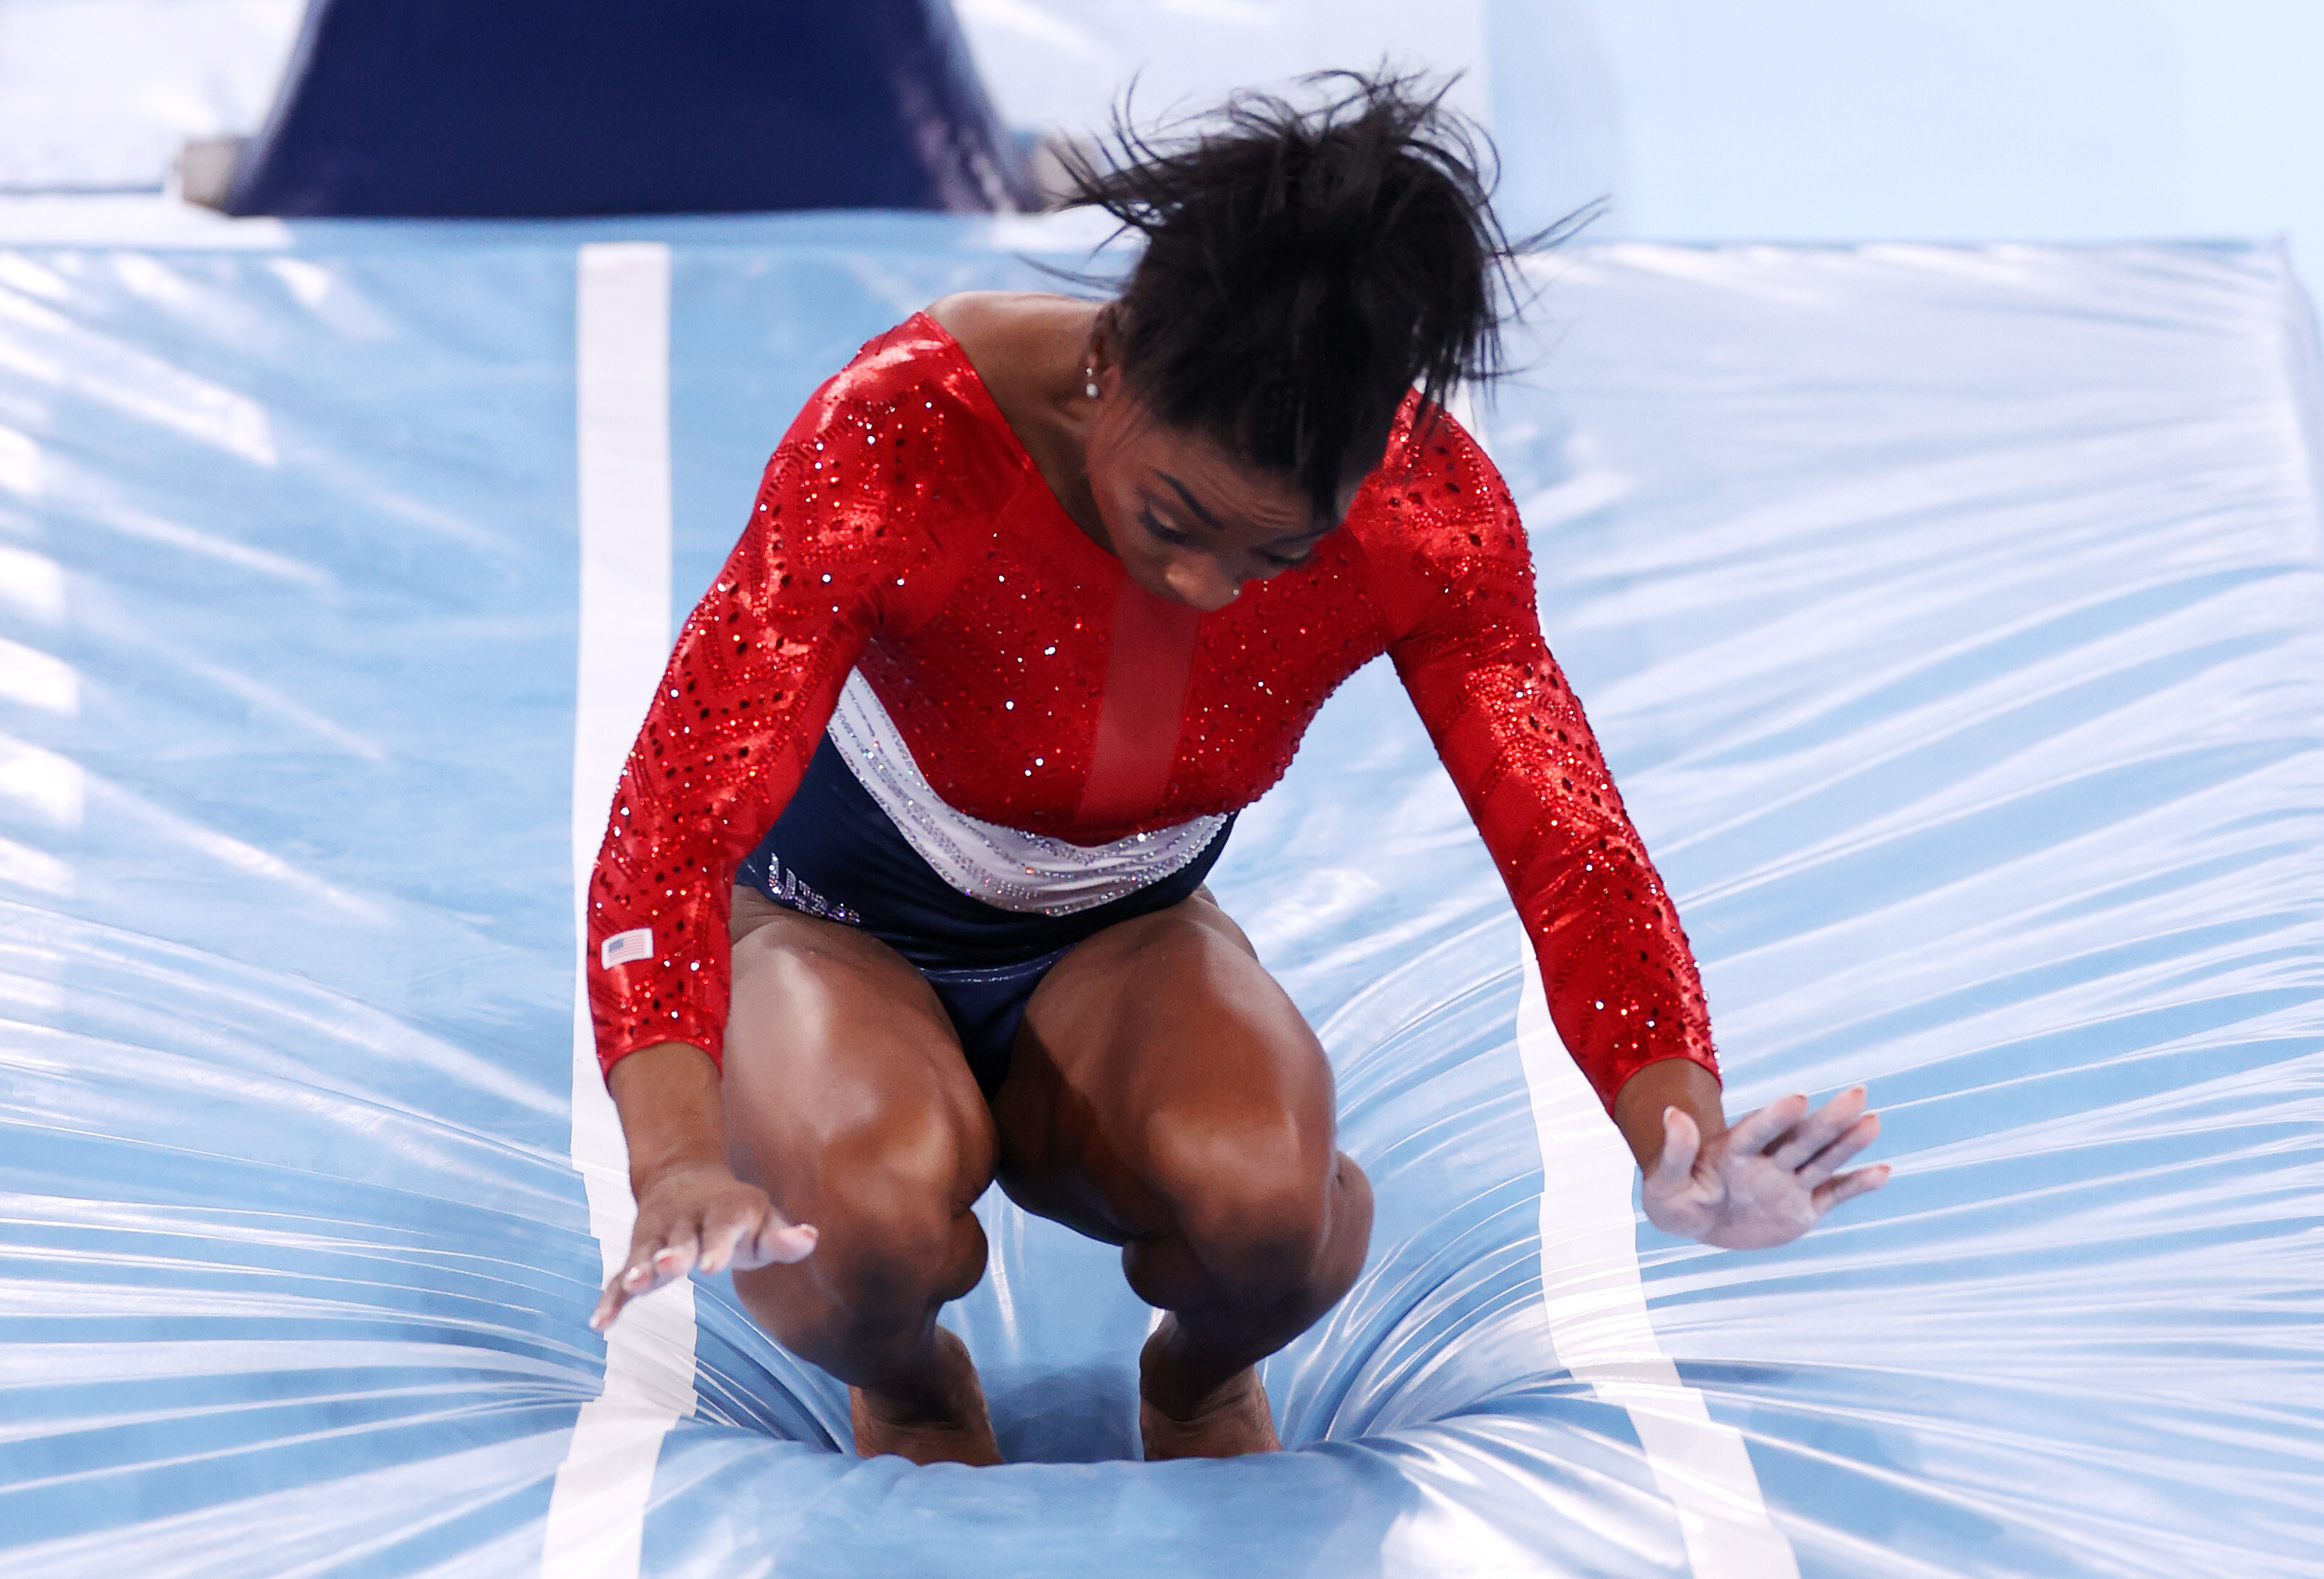 'I have to focus on my mental health,' says Simone Biles after withdrawing from gold medal event